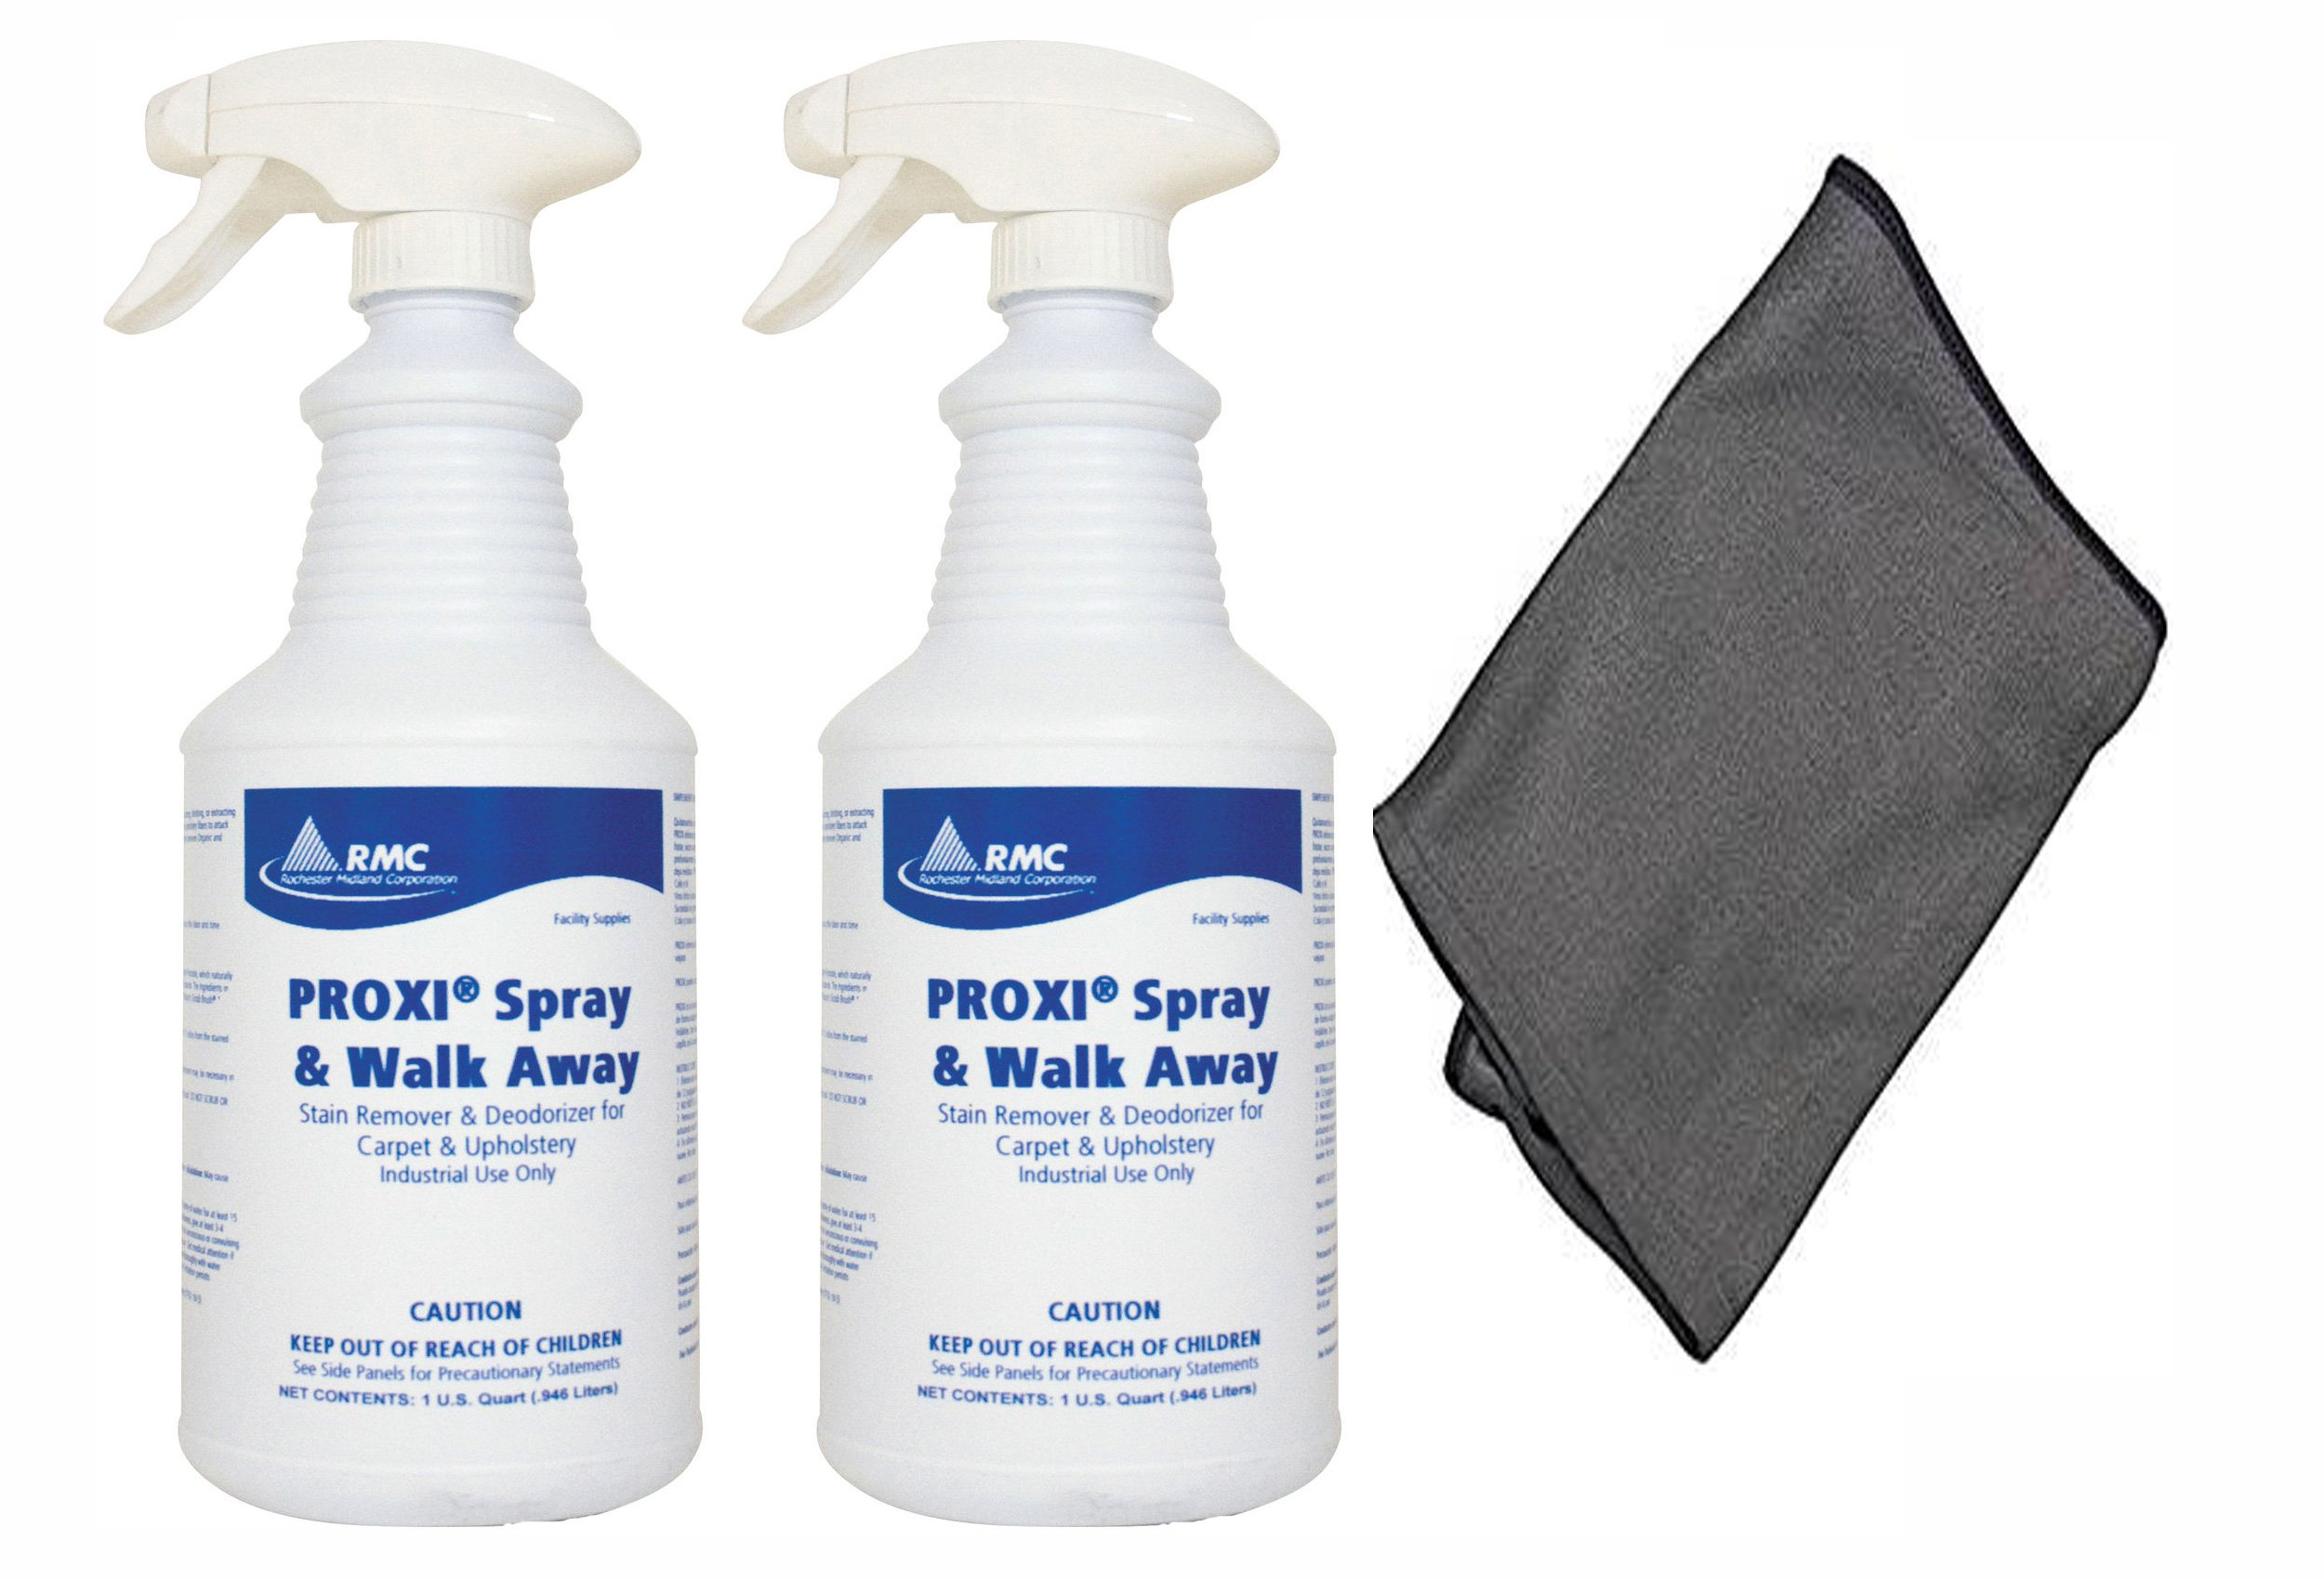 RMC Proxi Spray & Walk Away Spot Removal (2-Pack) Stain Remover Deodorizer Carpet Cleaner and Upholstery + Large 16 x 16 Microfiber Cleaning Cloth - RCMPC11849315-32oz